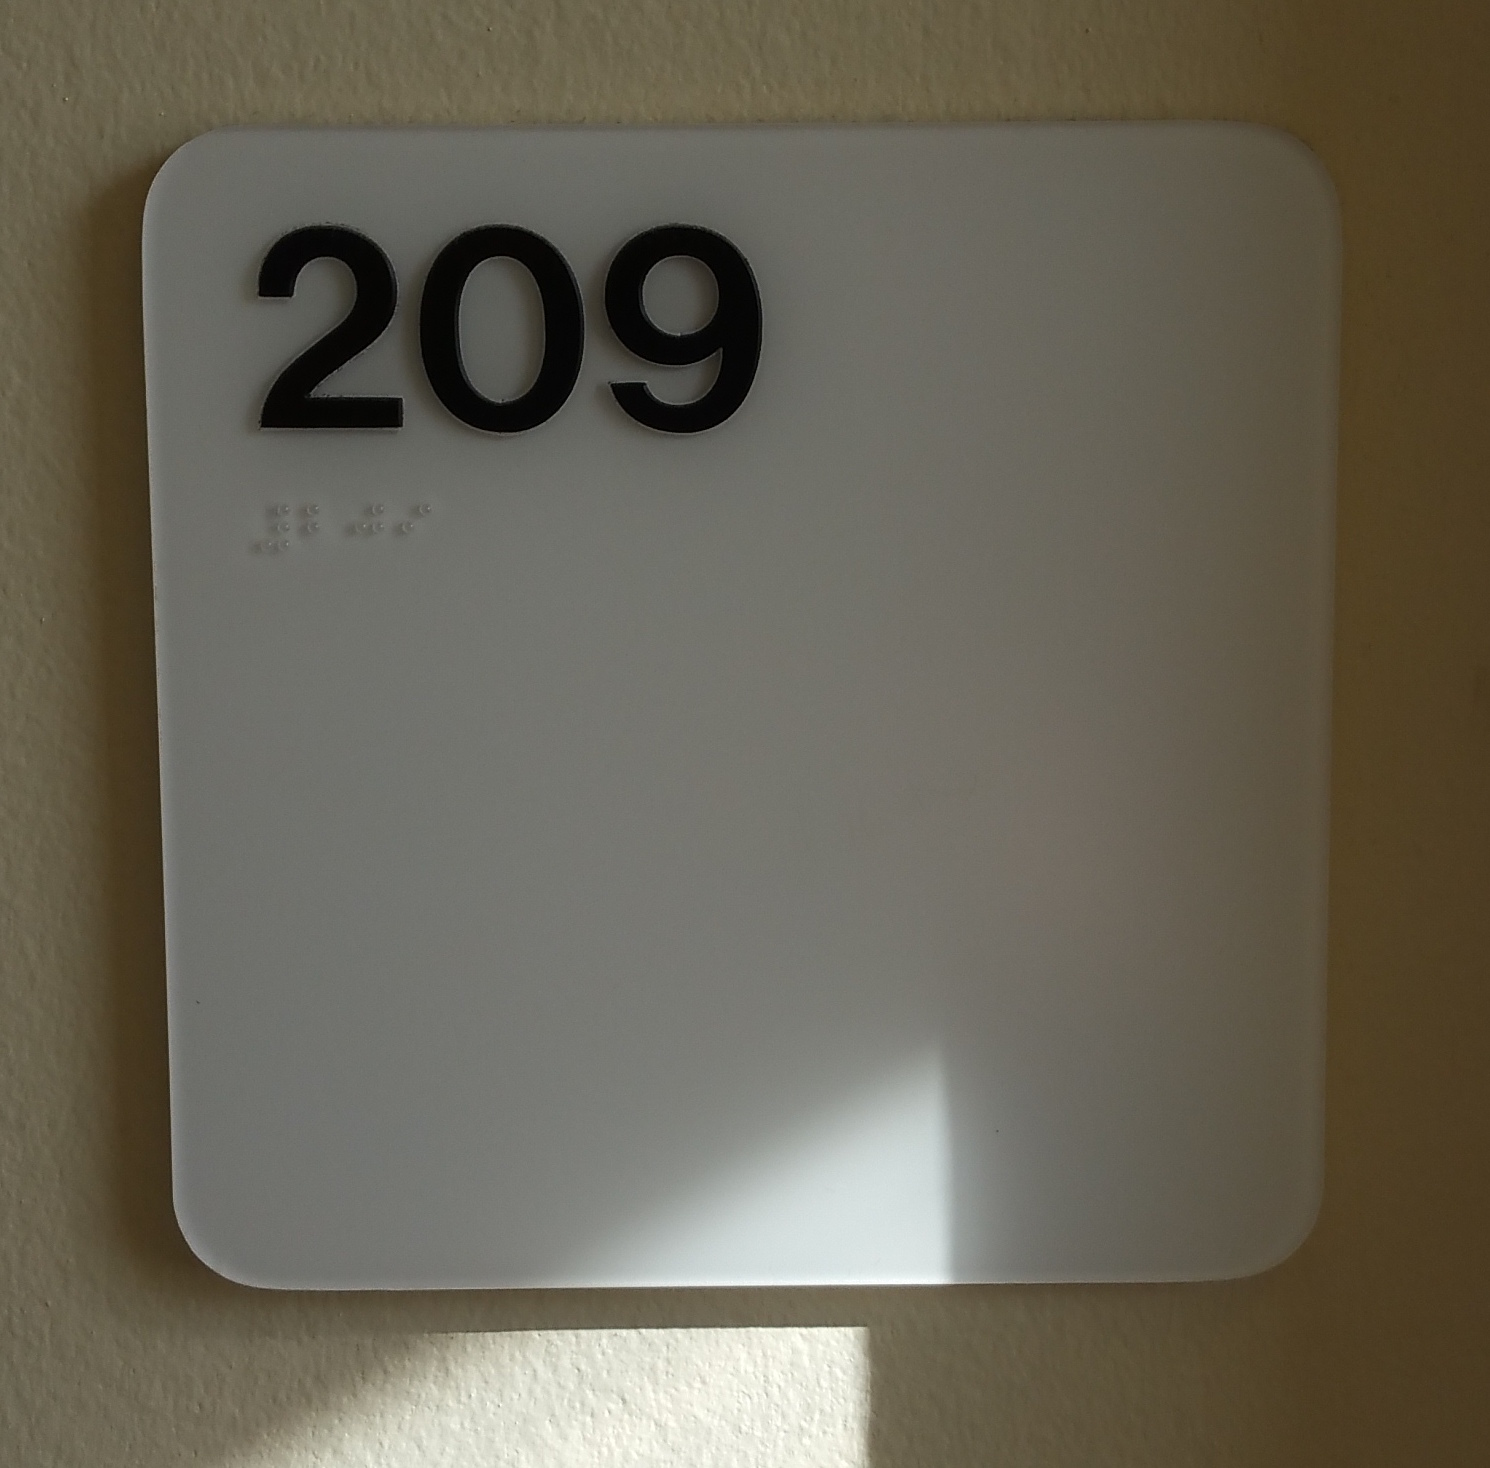 Photo of Carlton 209 room number